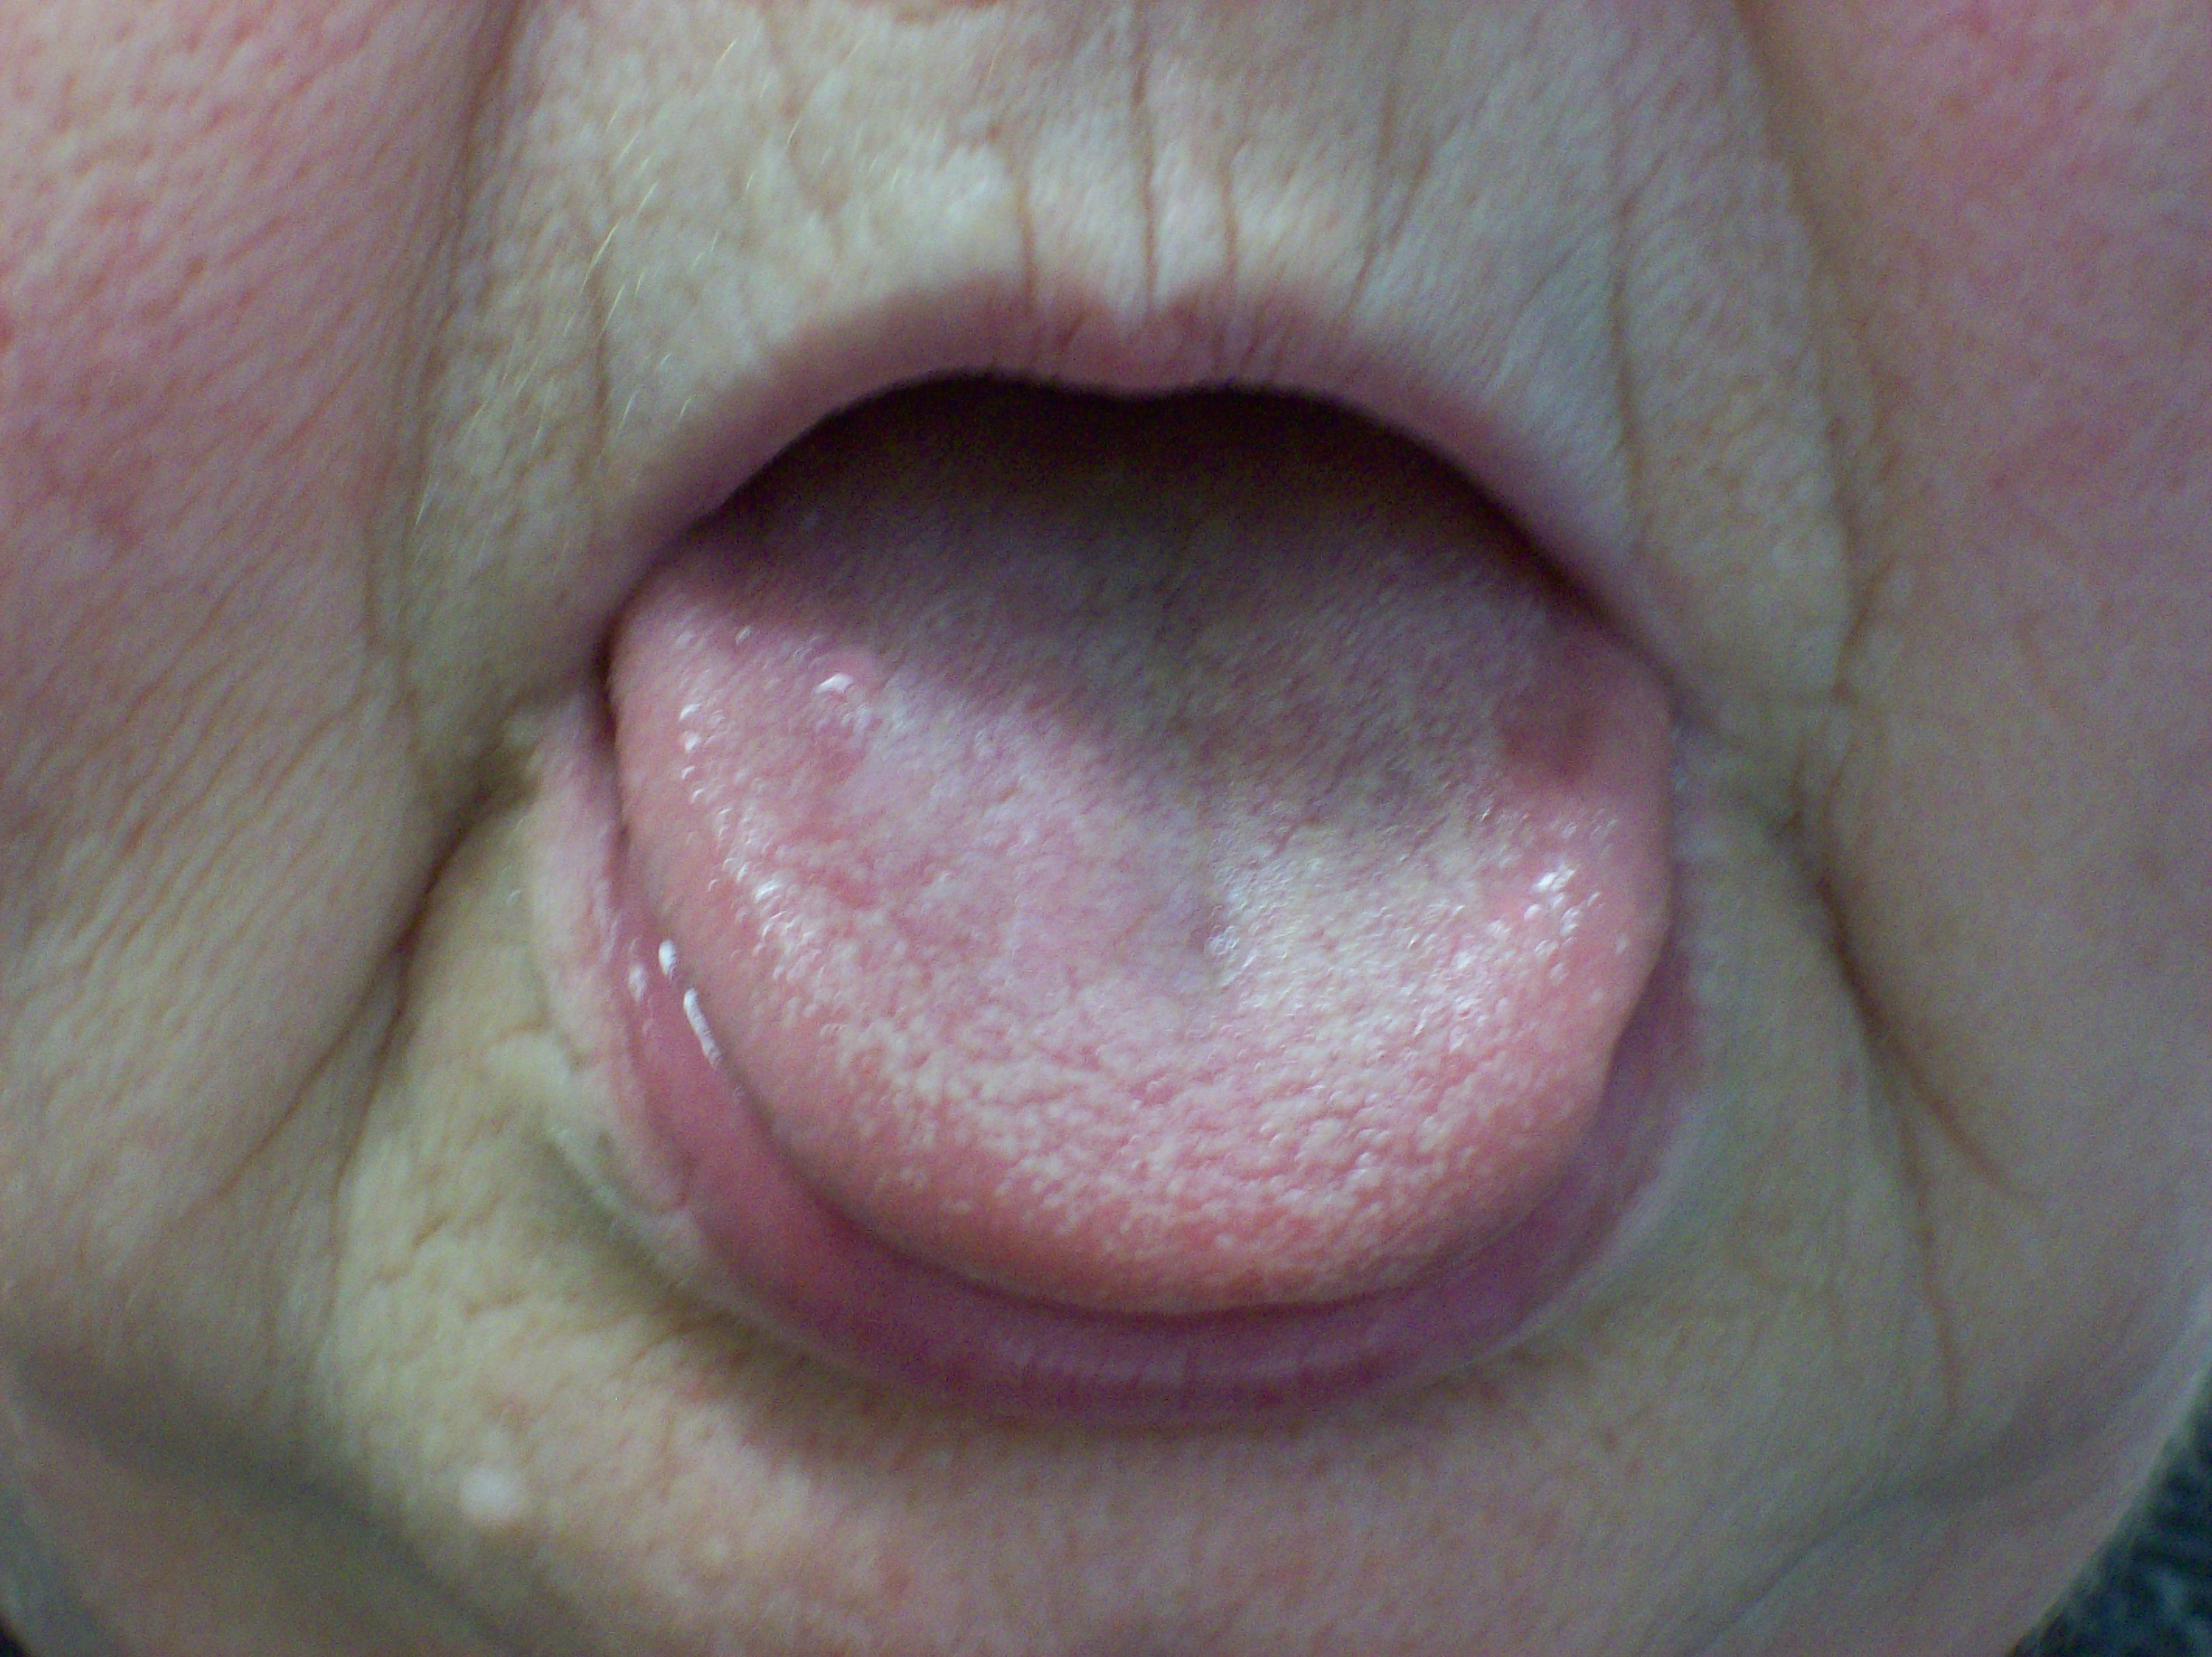 Look at your tongue, check your health